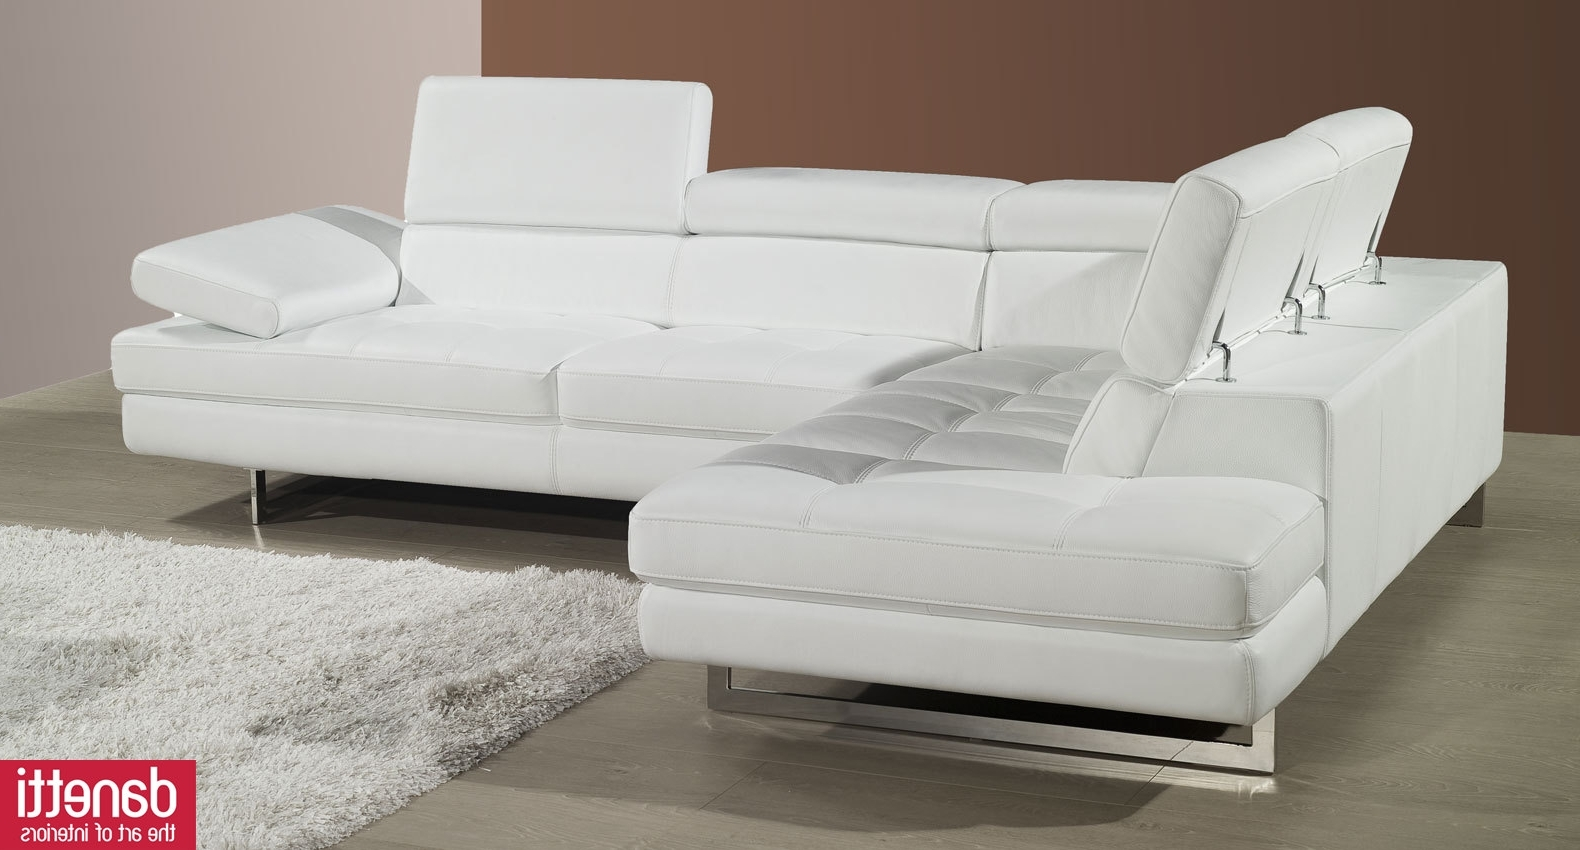 Well Known White Modern Sofas Within Beautiful White Leather Modern Sofa 85 On Modern Sofa Inspiration (View 11 of 20)